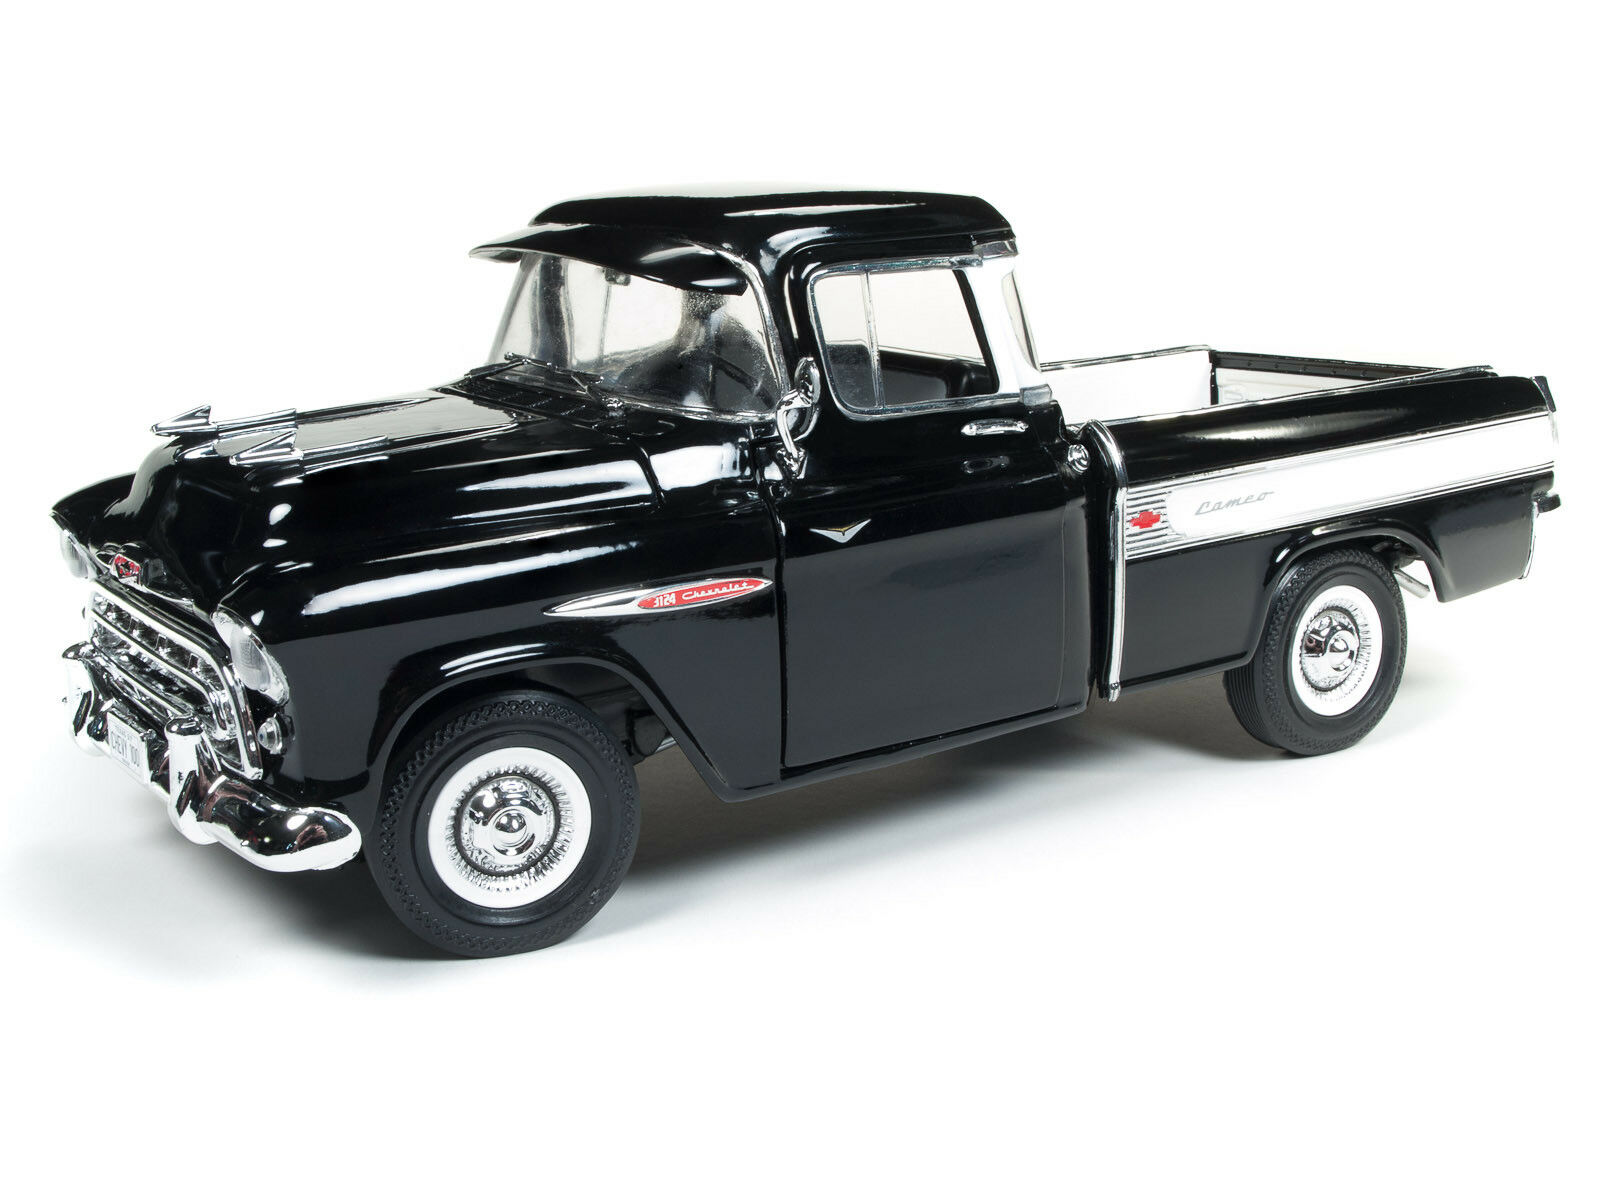 2018 Auto World 1 18 American Muscle  Negro  1957 Chevy Cameo Pickup 100 años